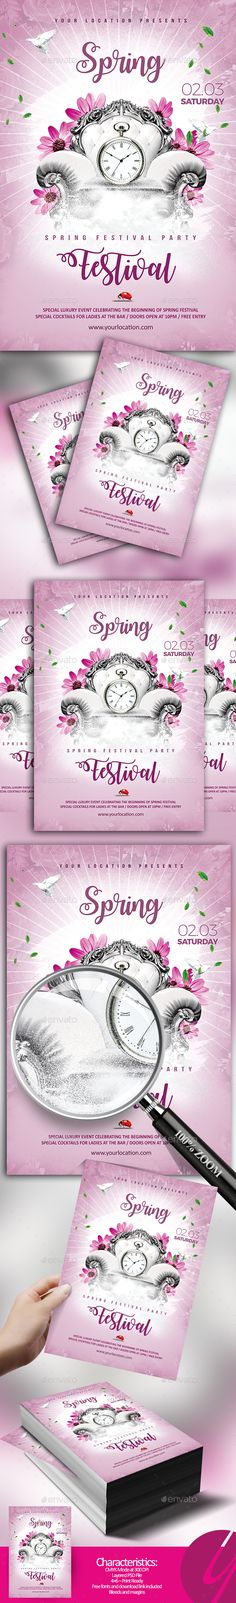 Spring Festival Parties - Clubs & Parties Events